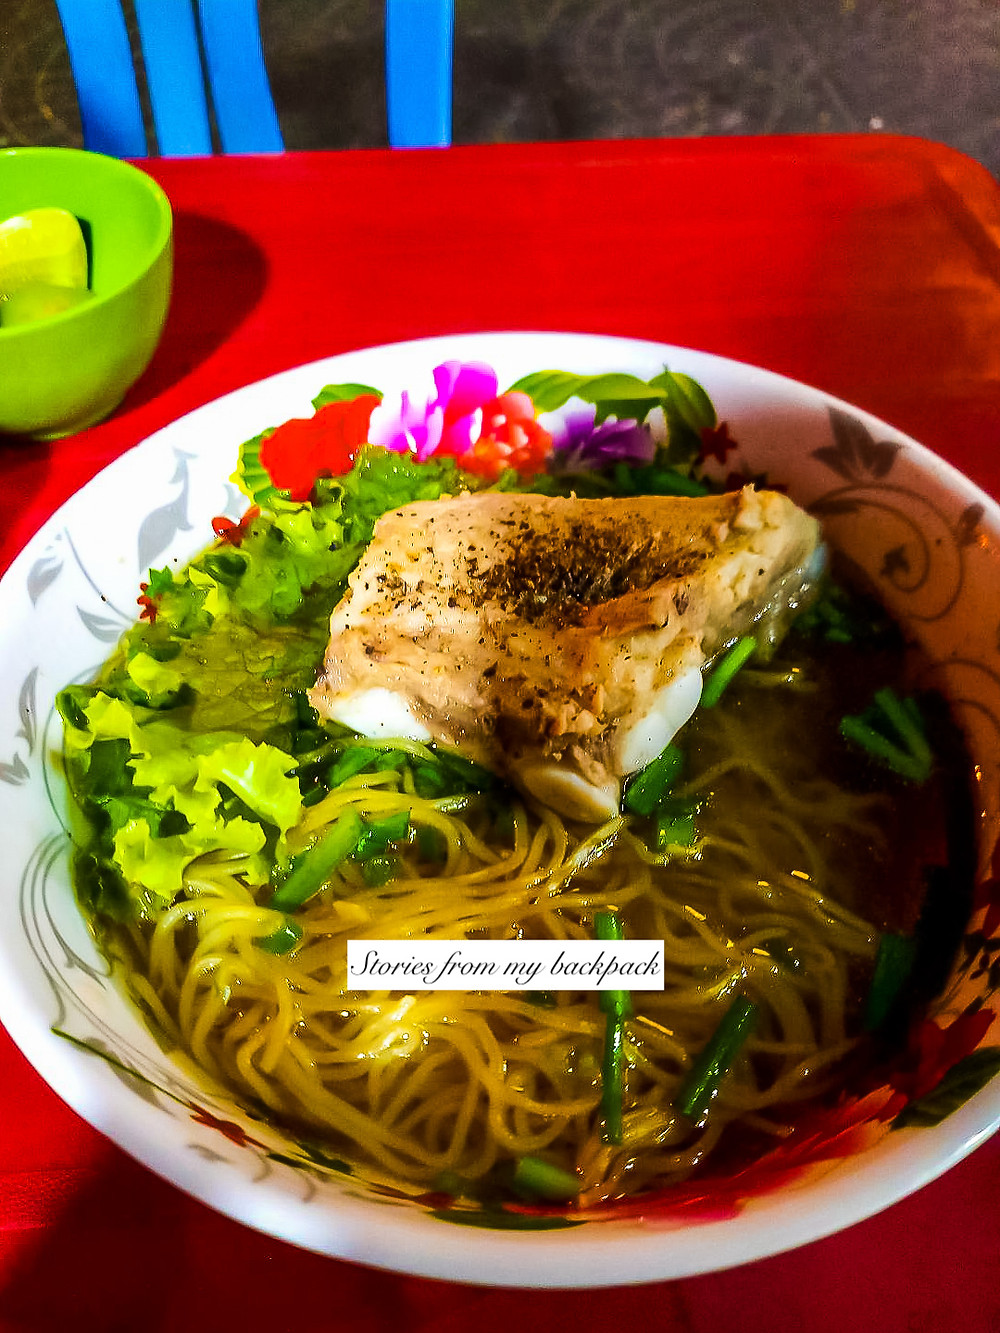 , pork noodle soup, beef Pho, where to eat pho in ho Chi Minh city, best food in Vietnam, what to eat in Vietnam, food dictionary for Vietnam, best Vietnamese food, Vietnamese noodle soup